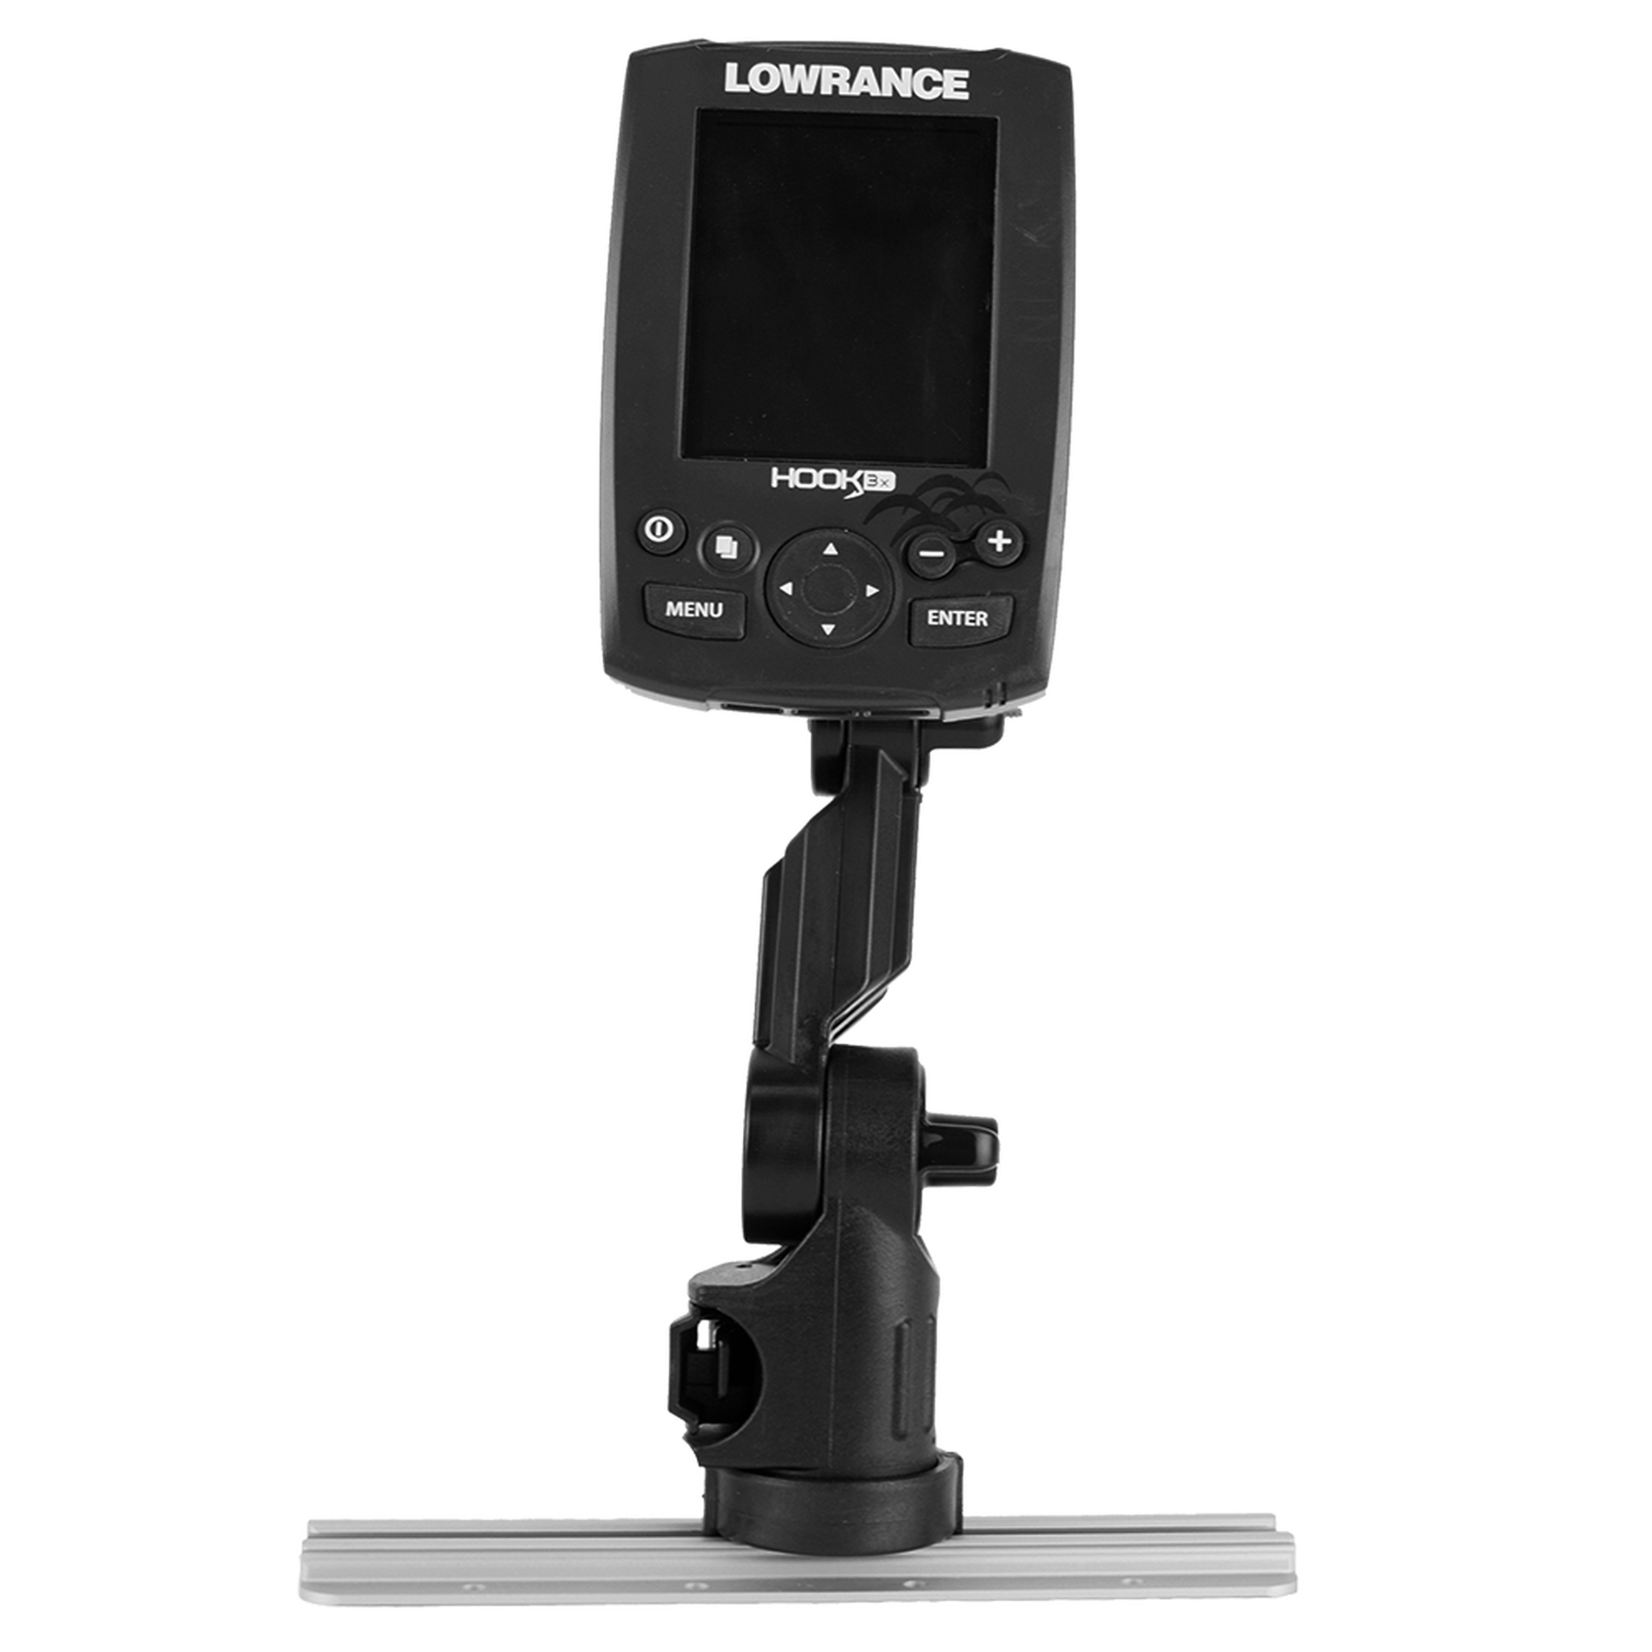 Yakattack Lowrance Fish Finder Mounty w/ Track Mounted LockNLoad system